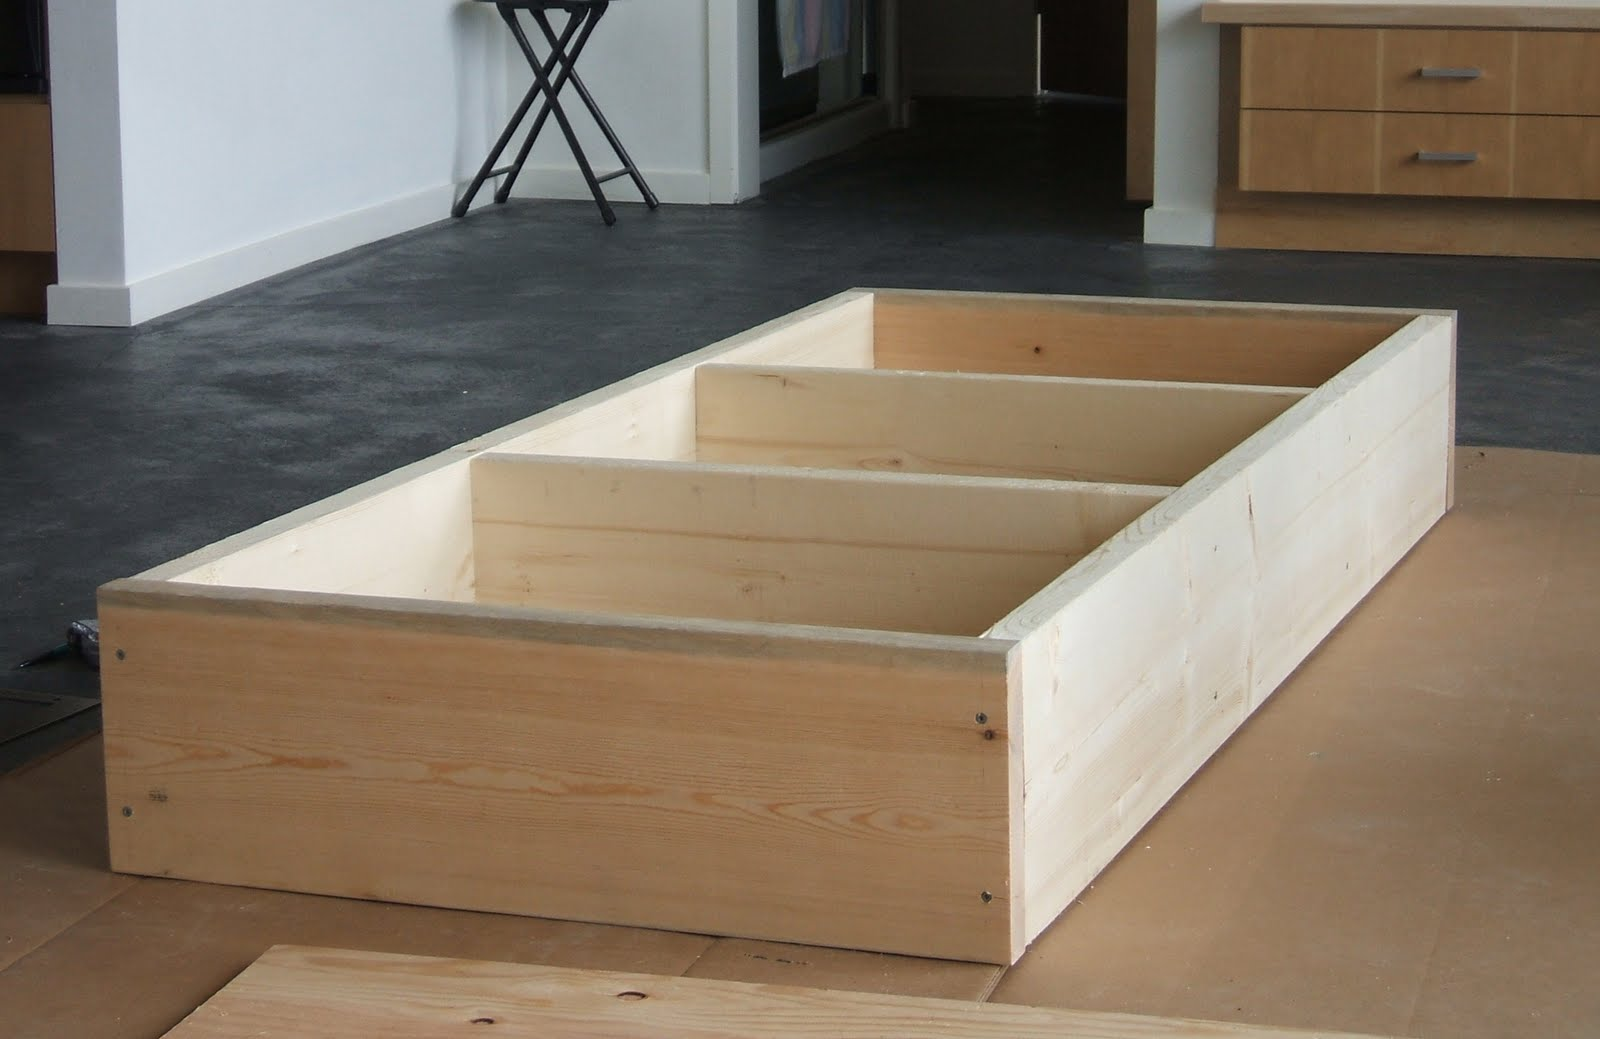 how to build a twin-size platform bed frame | Woodworking DIY Projects